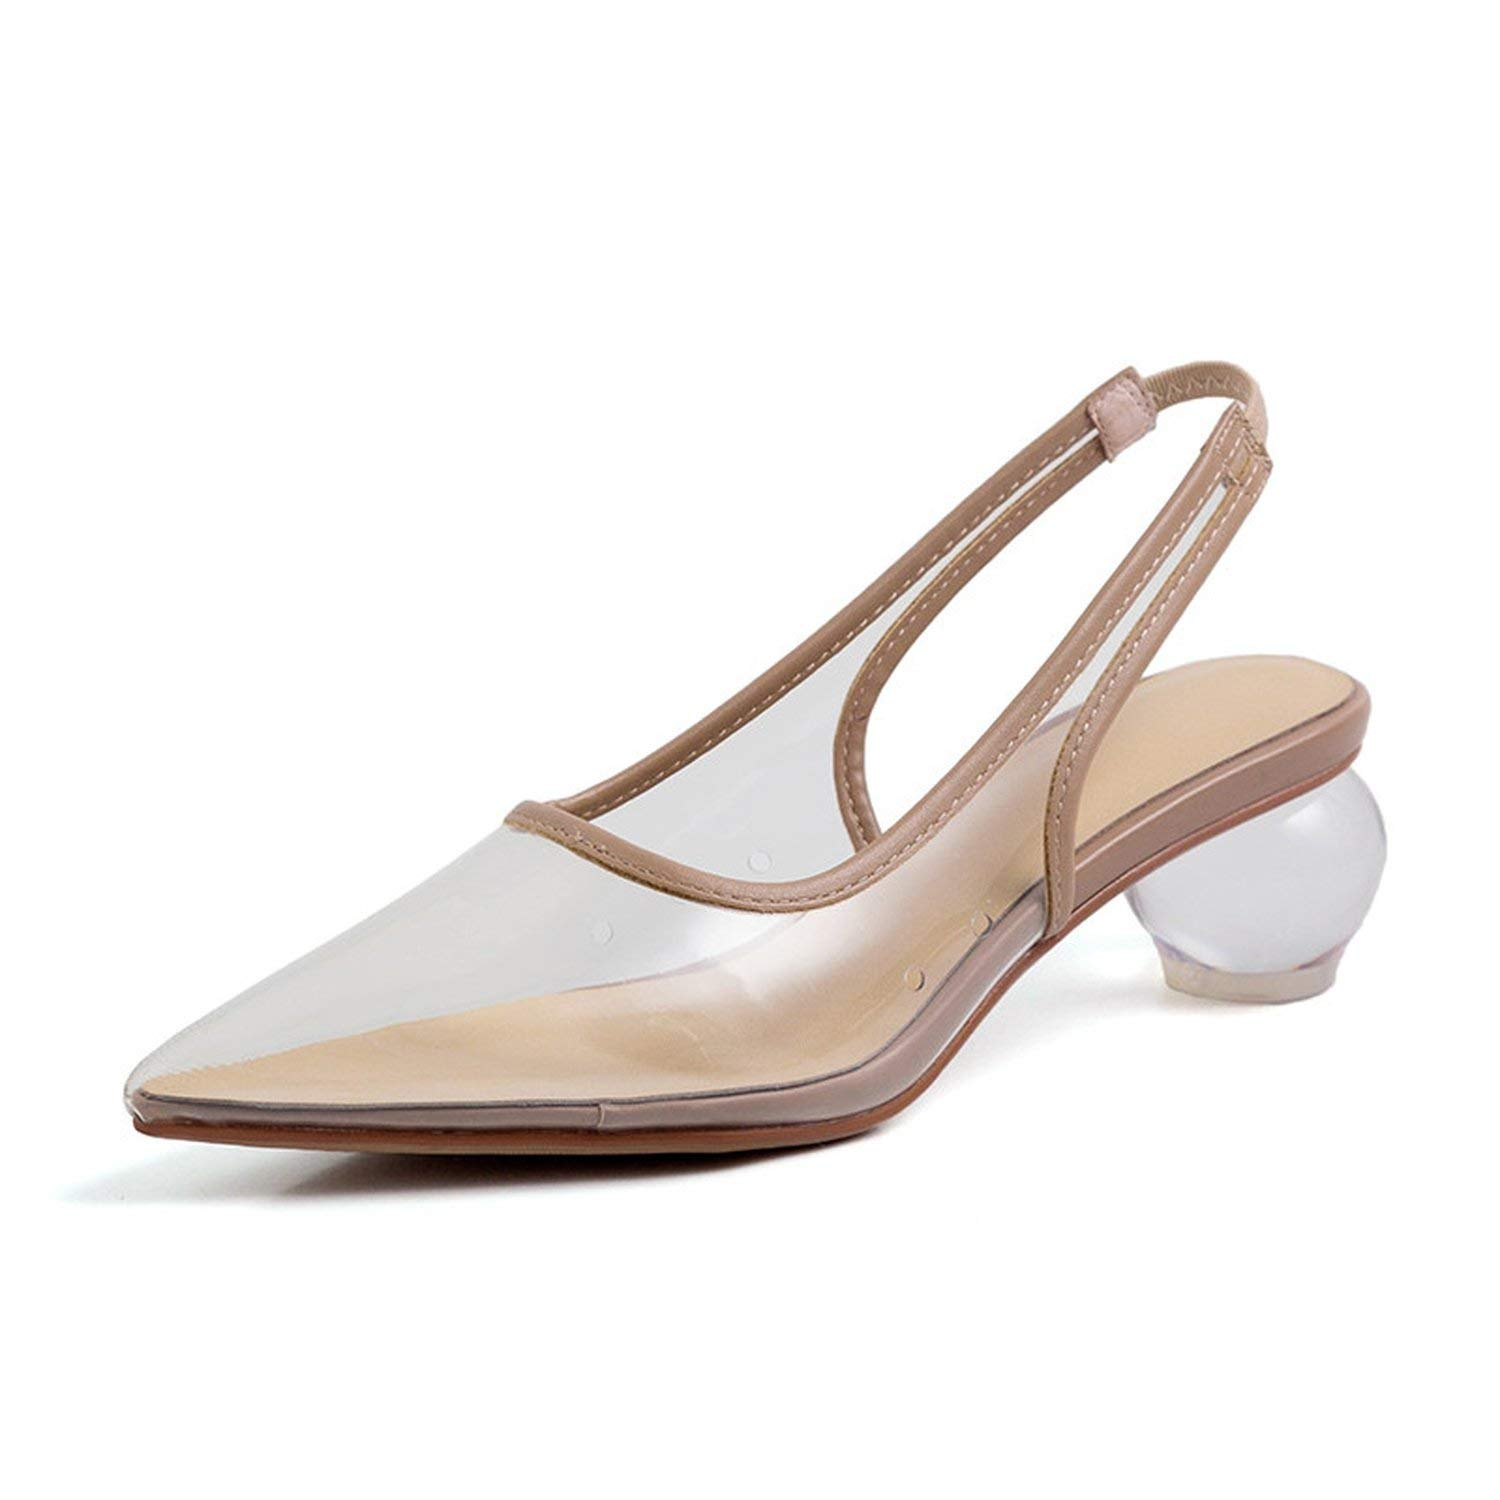 Khaki I Need-You Pointed Toe Sexy Fashion Party Woman Sandals Transparent Crystal Heels Ladies Sandals Mixed colors Sandalias women 2019